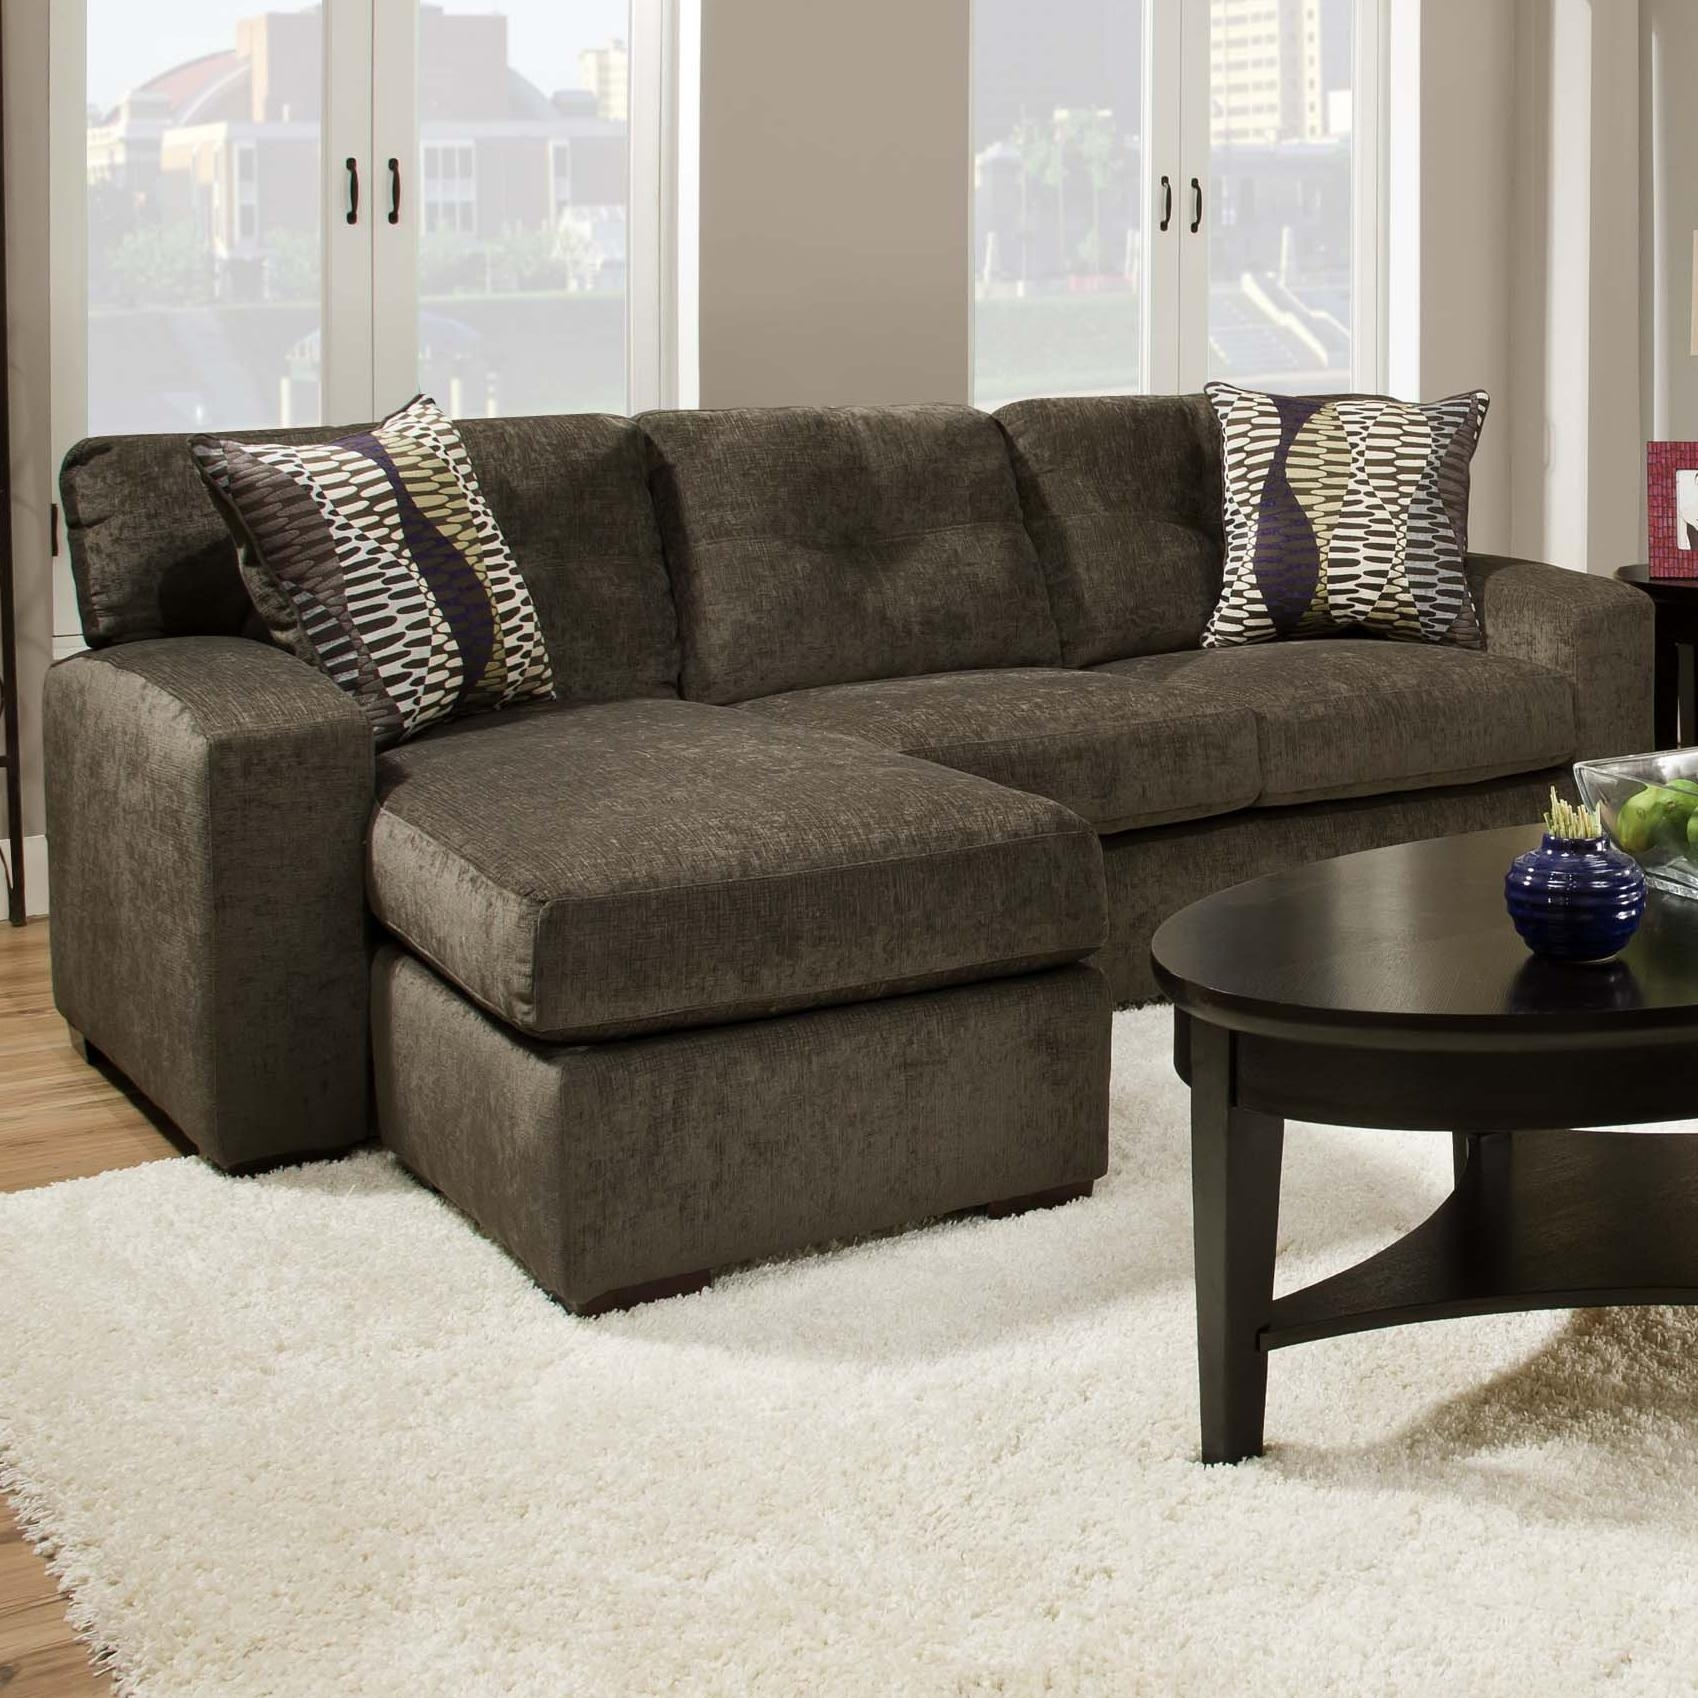 American Furniture 5100 Group Small Sectional Sofa With Chaise Inside Small Sectional Sofas With Chaise And Ottoman (View 1 of 15)